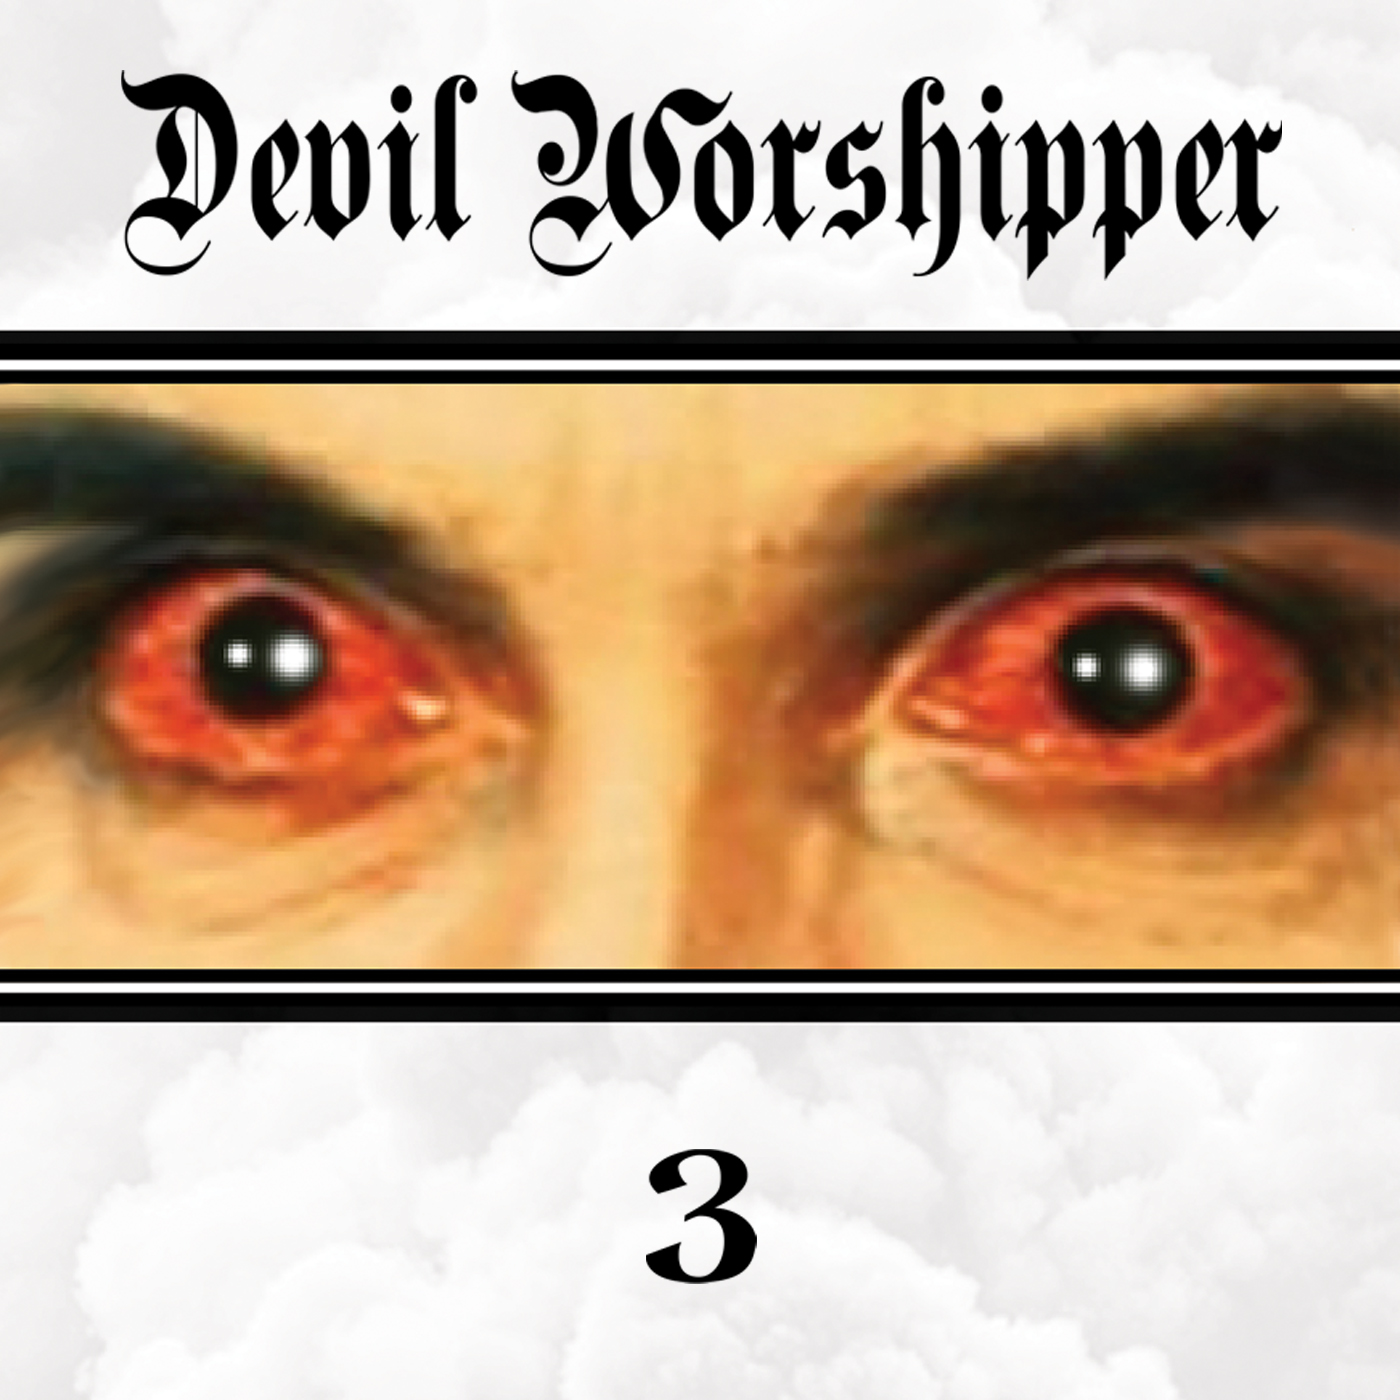 devil worshipper 3